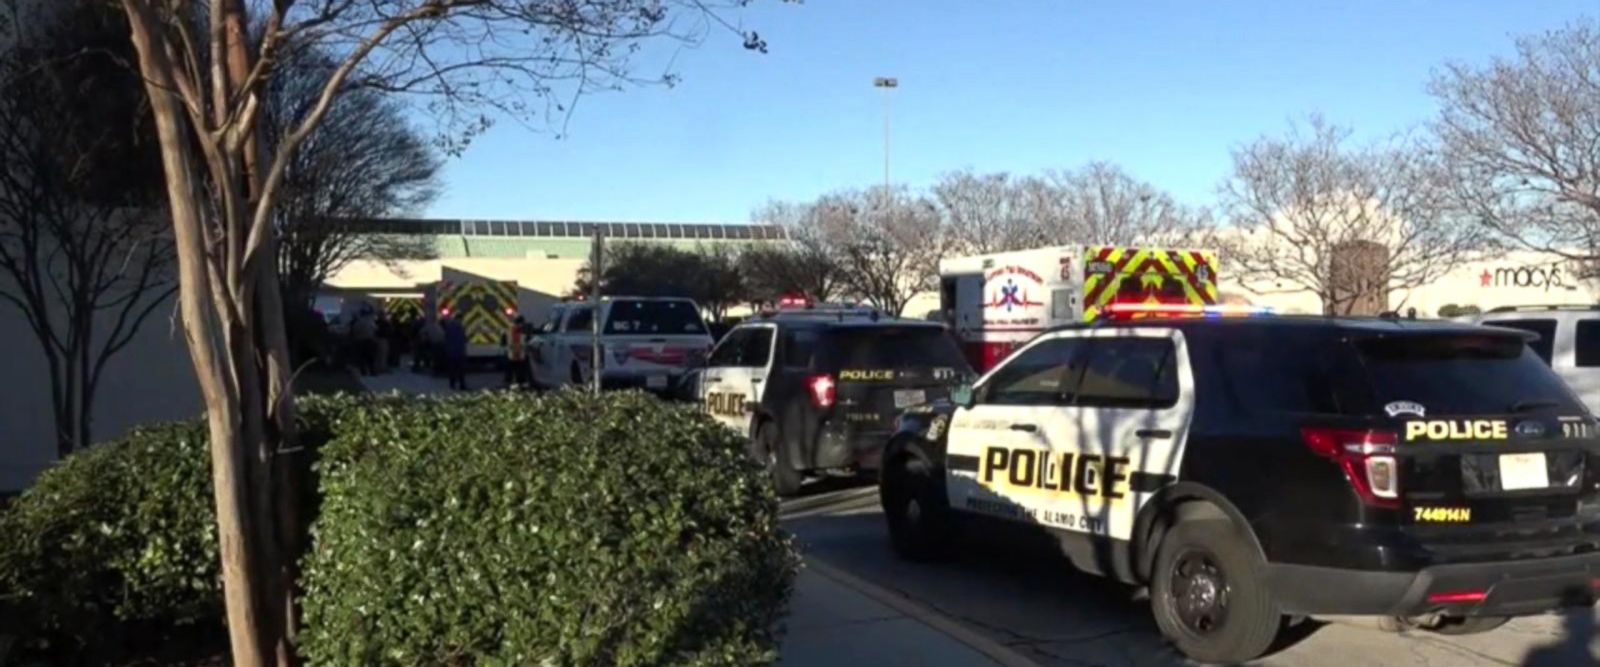 VIDEO: 1 Dead, 3 Shot After Attempted Robbery at San Antonio Mall